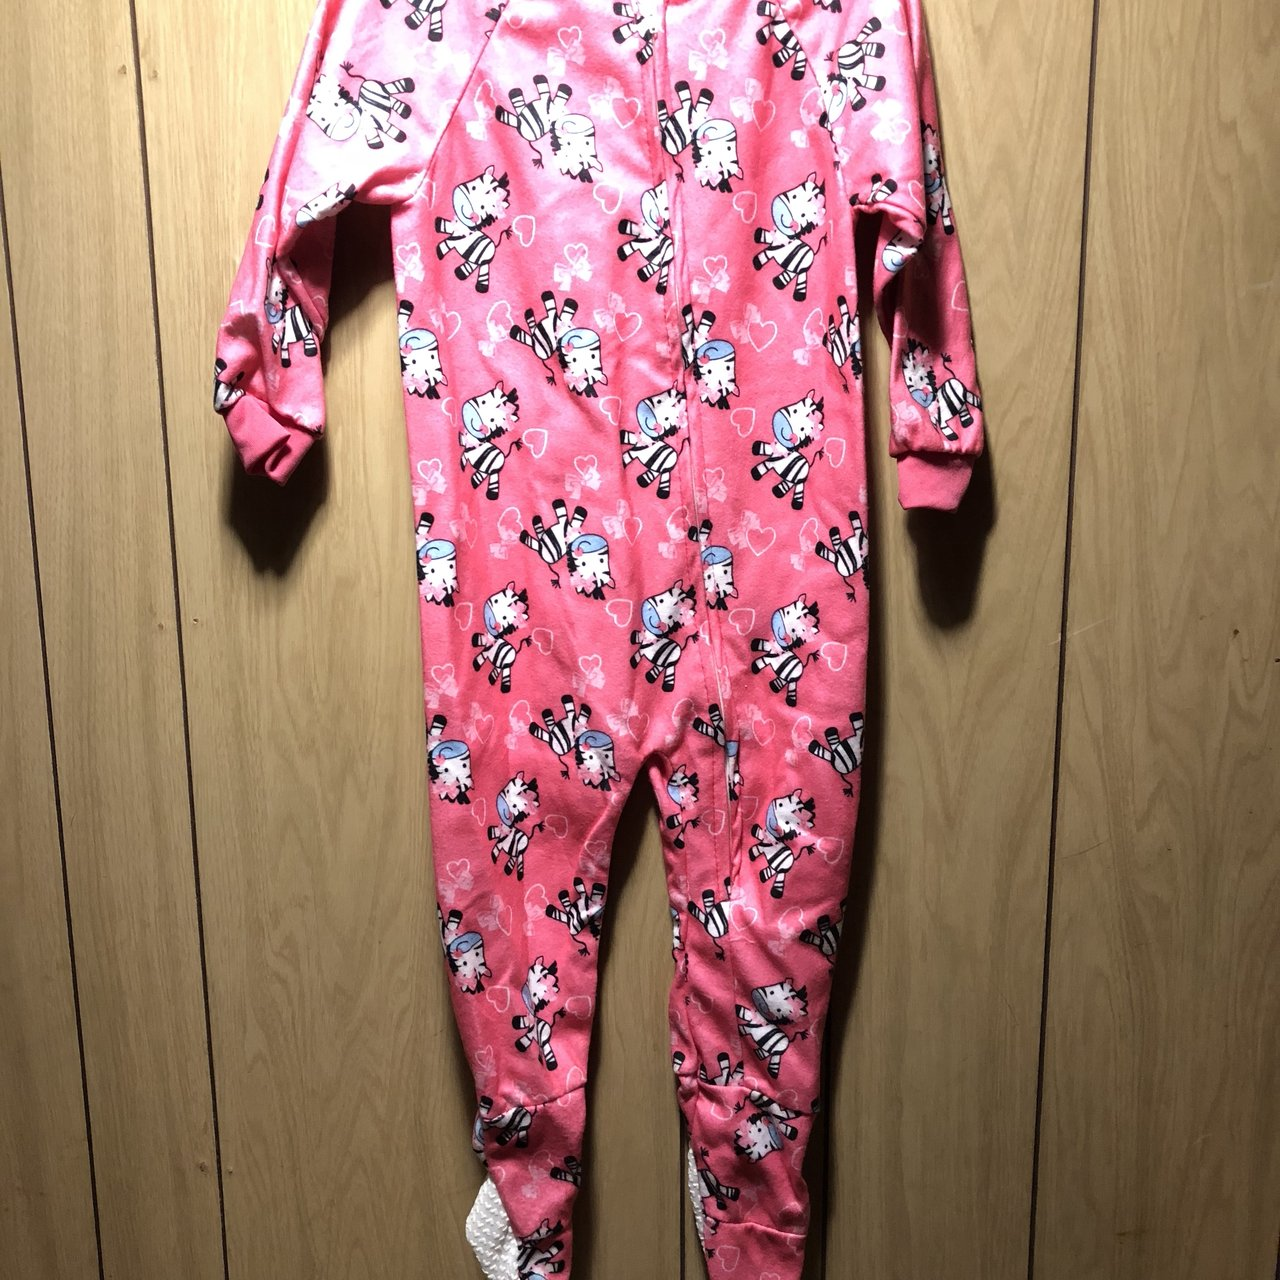 91a48798bb02 Toddler Girls toddler footed pajamas   brand new   size 4T   - Depop